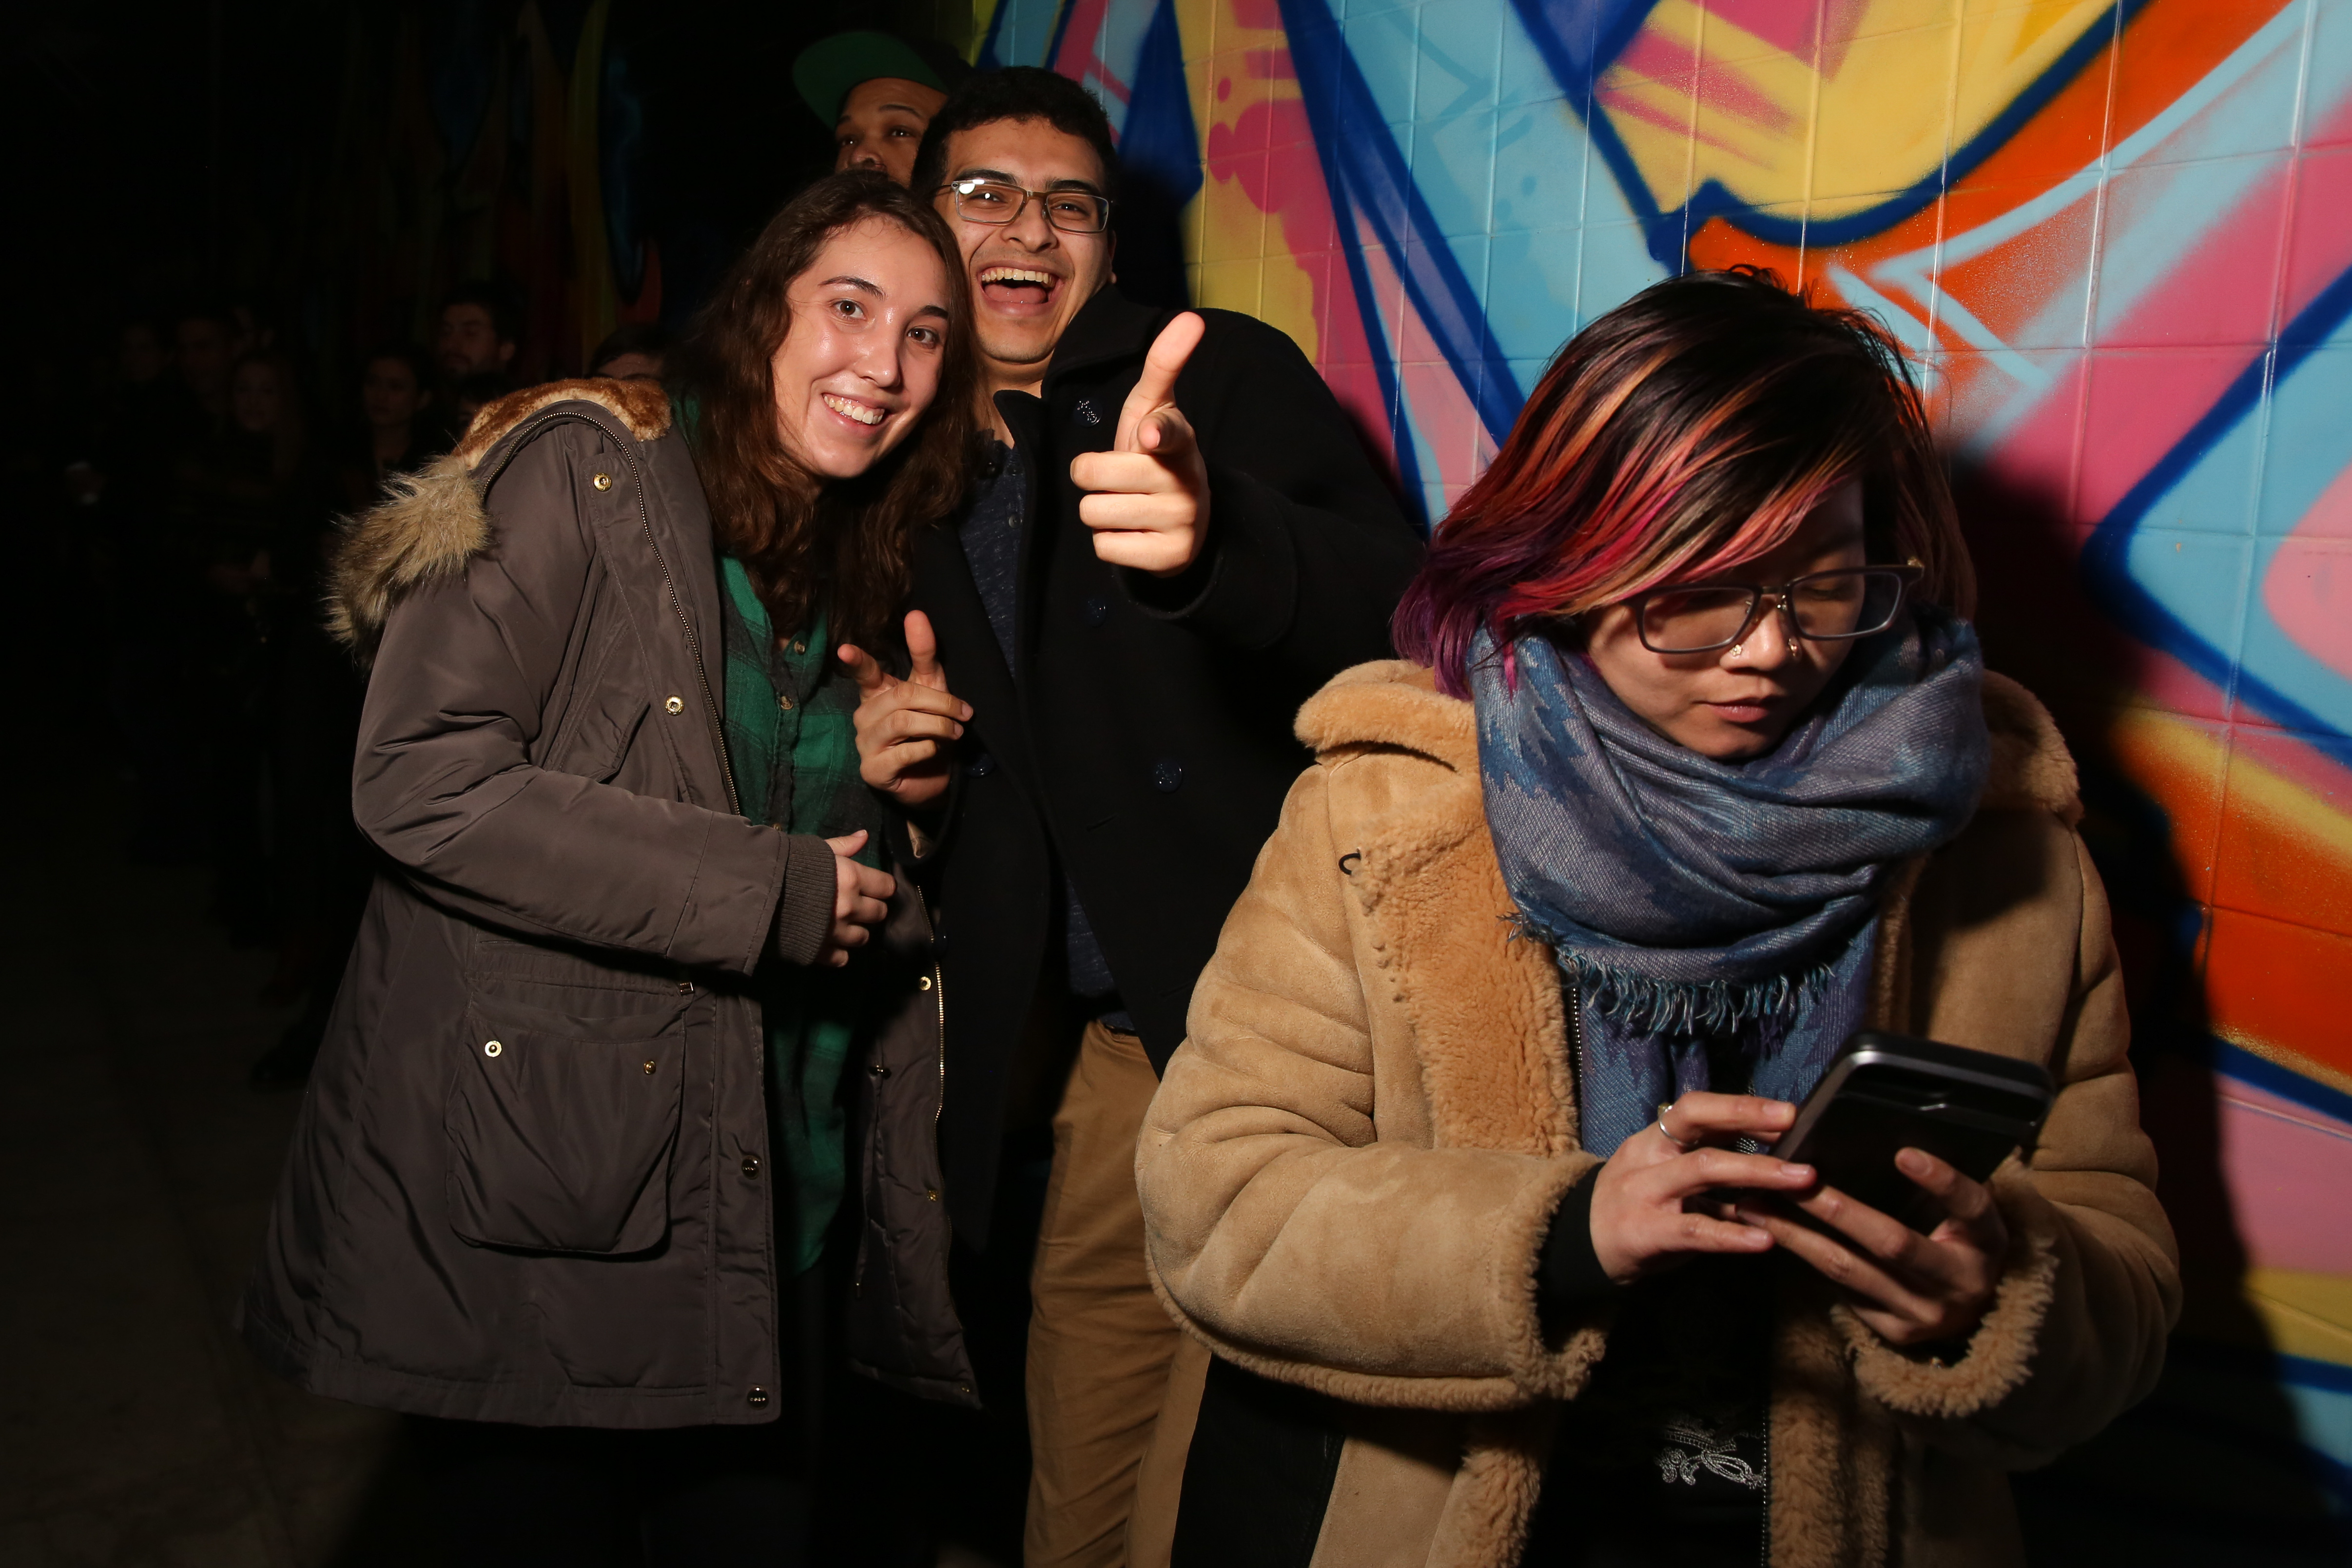 Dupont Underground hosted Munderground, a night of music from acts mostly based in D.C., headlined by Mundy. The arts space has plenty of multimedia offerings, but the stellar murals and intimate atmosphere make this one of the coolest venues in D.C. (Amanda Andrade-Rhoades/DC Refined)